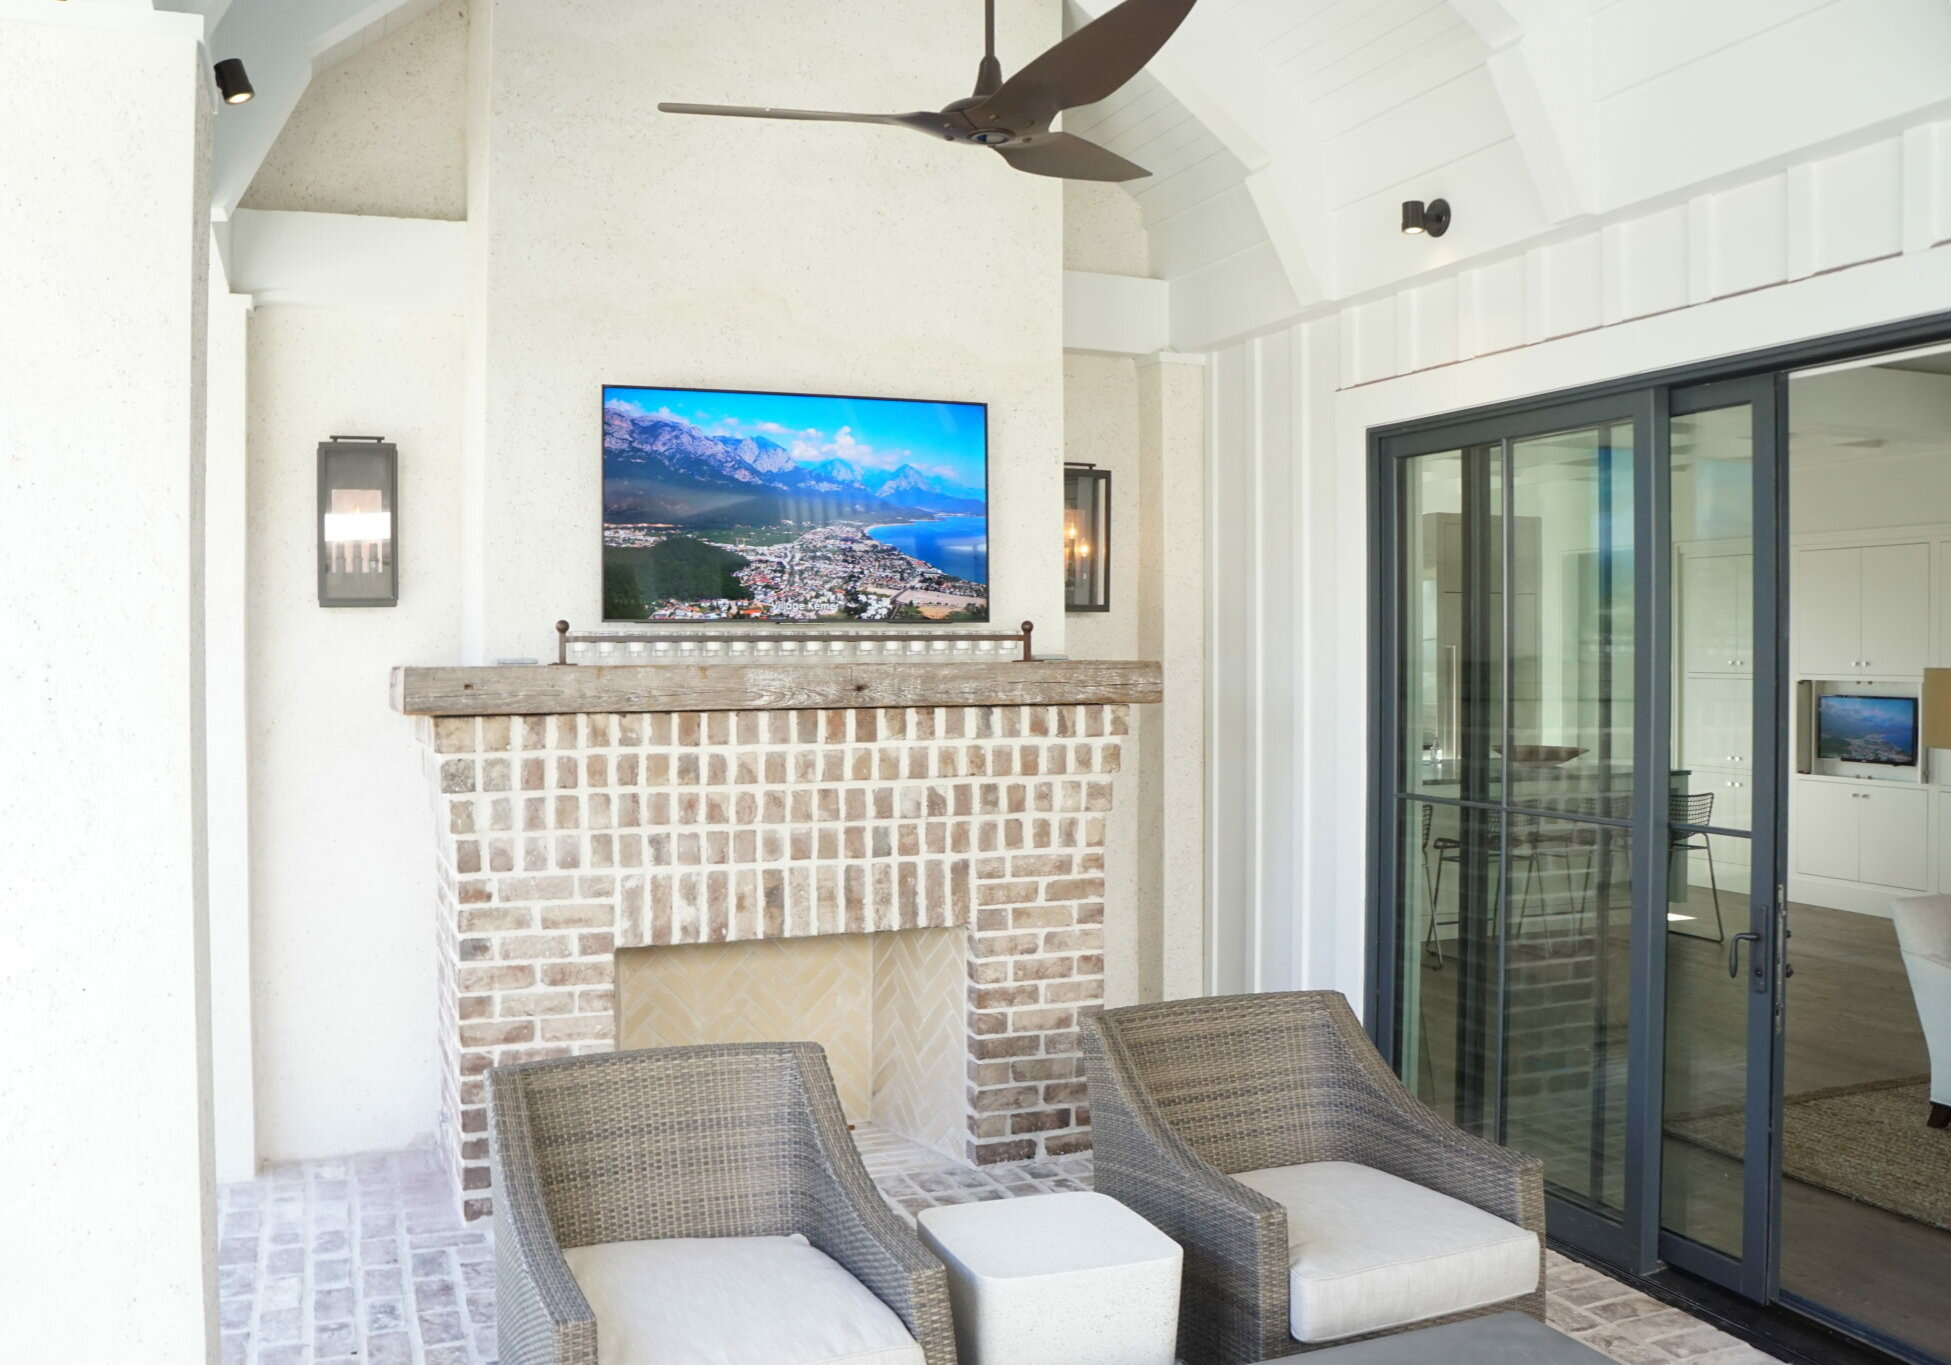 Outdoor HDTV